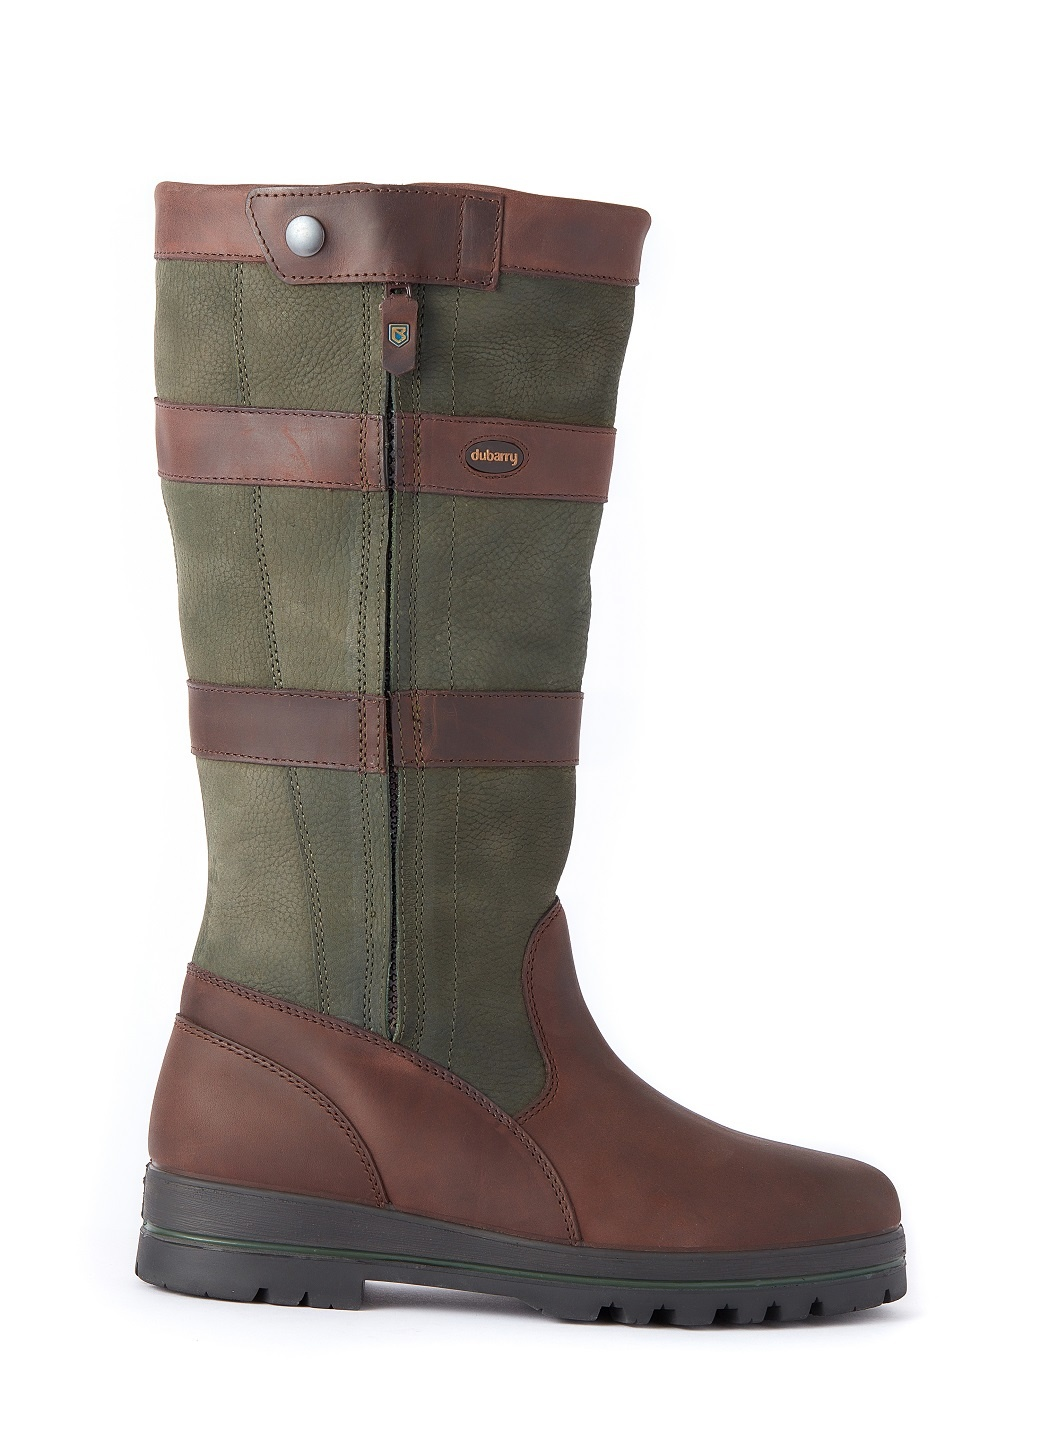 Dubarry Wexford - Ivy-5